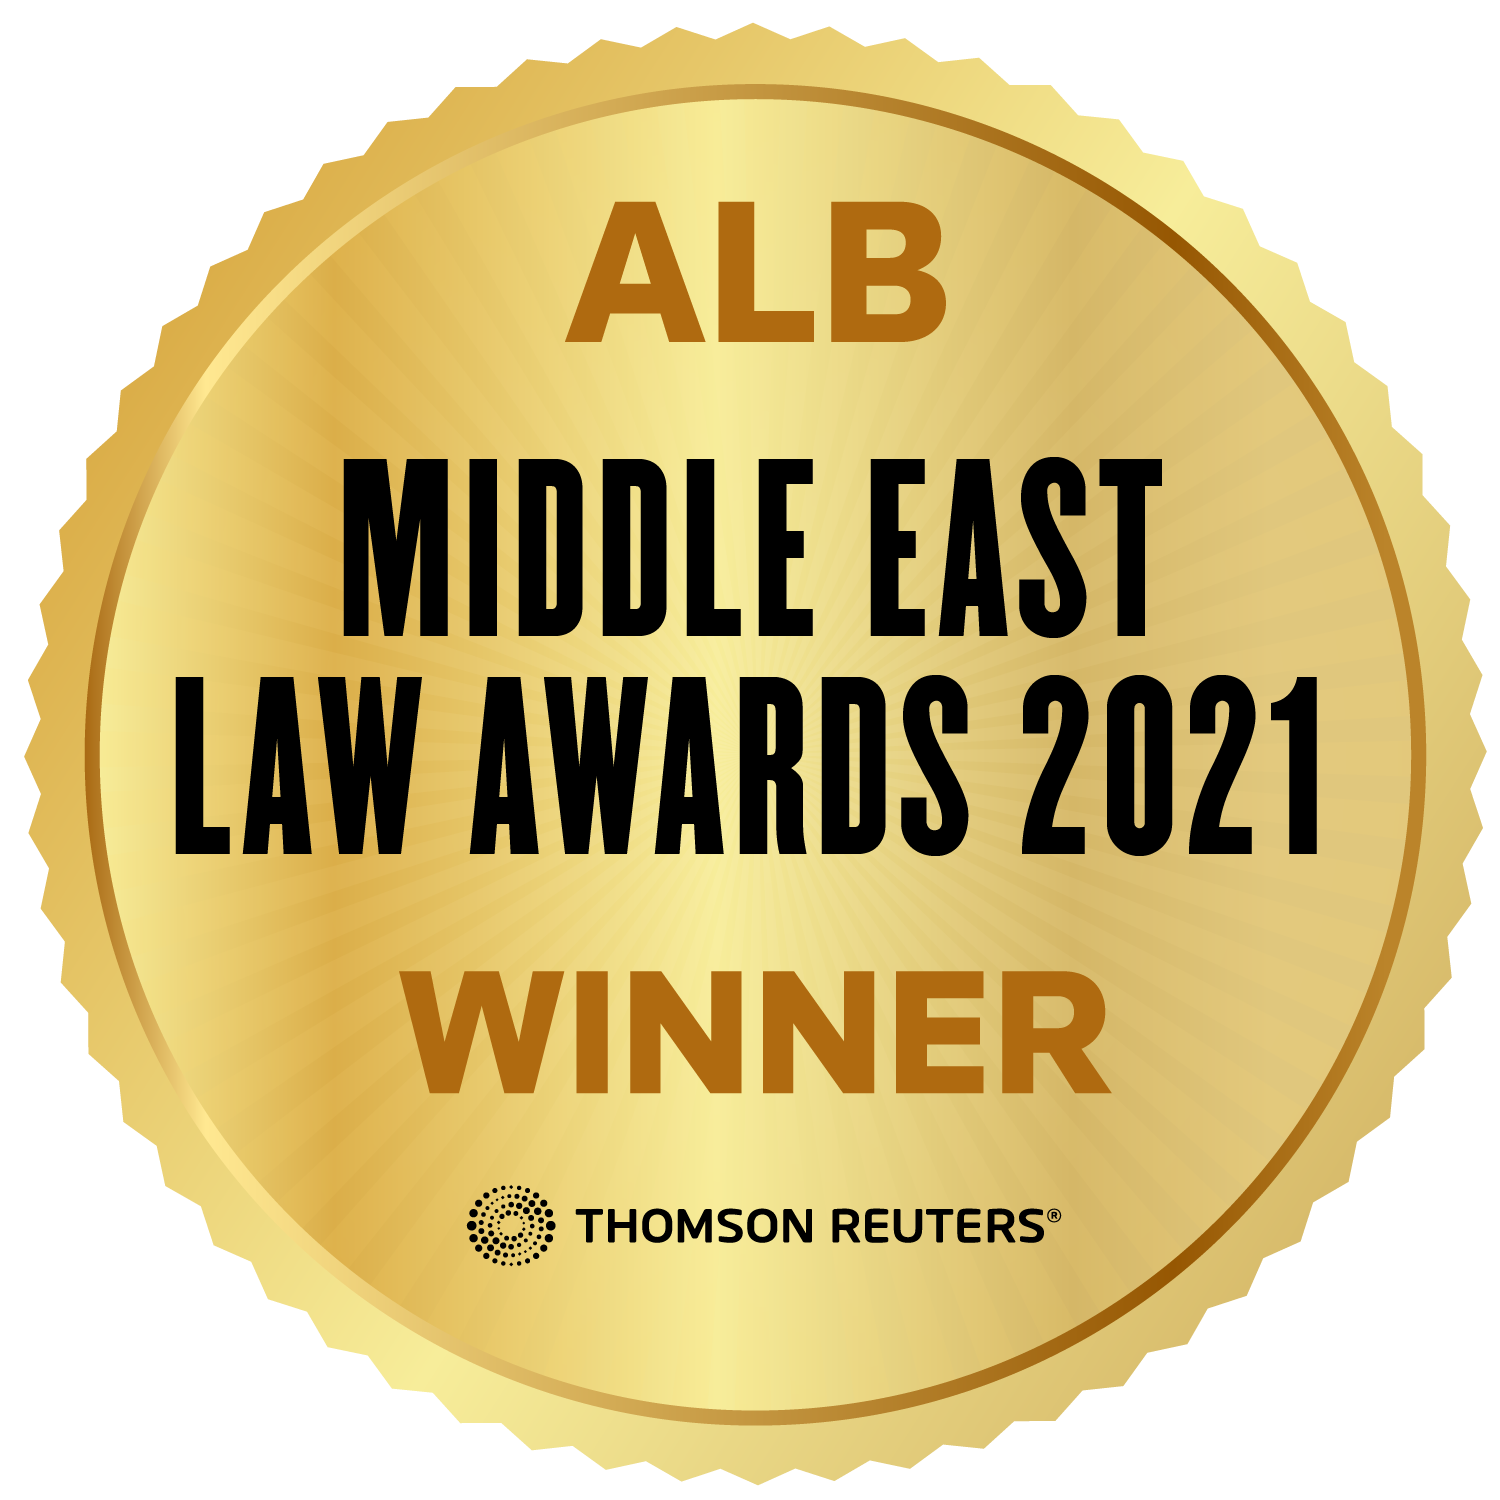 2021 ALB Young Lawyer of the Year Award